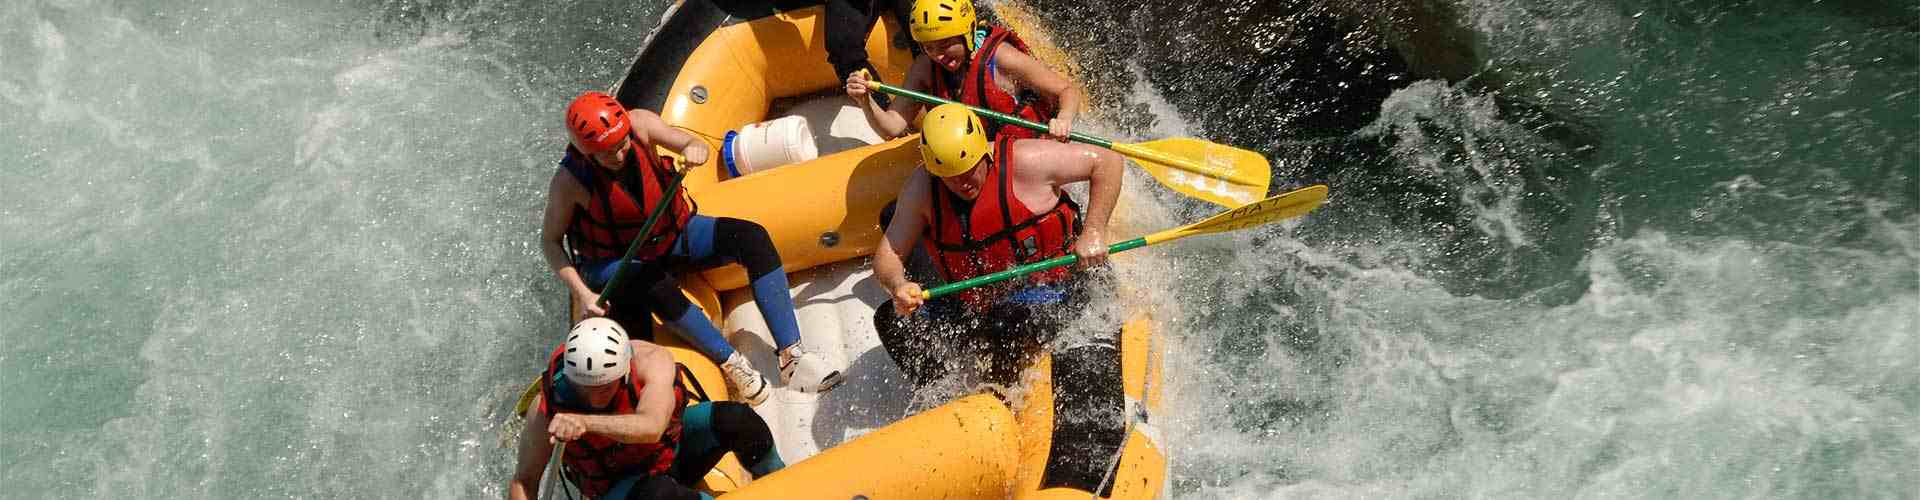 Rafting en Barbolla